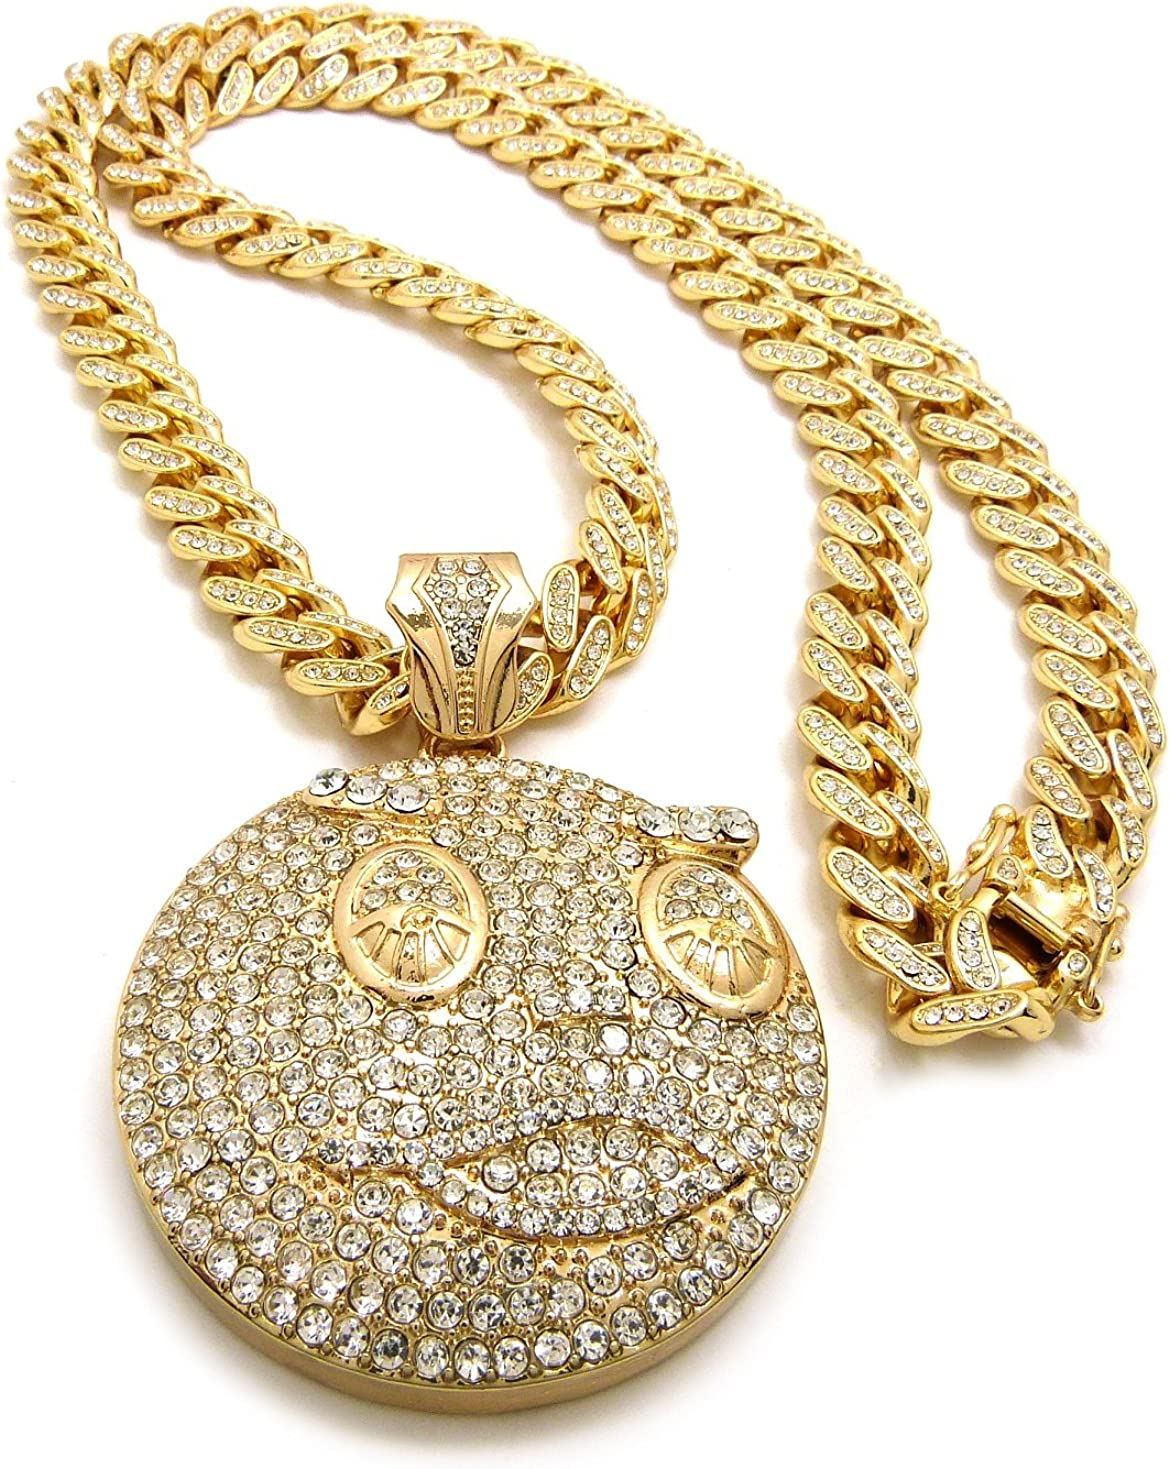 Crescendo SJ INC ICED Out GLO-Gang Pendant /& 12mm//30 ICED Out Cuban Chain Hip HOP Necklaces RC2652G